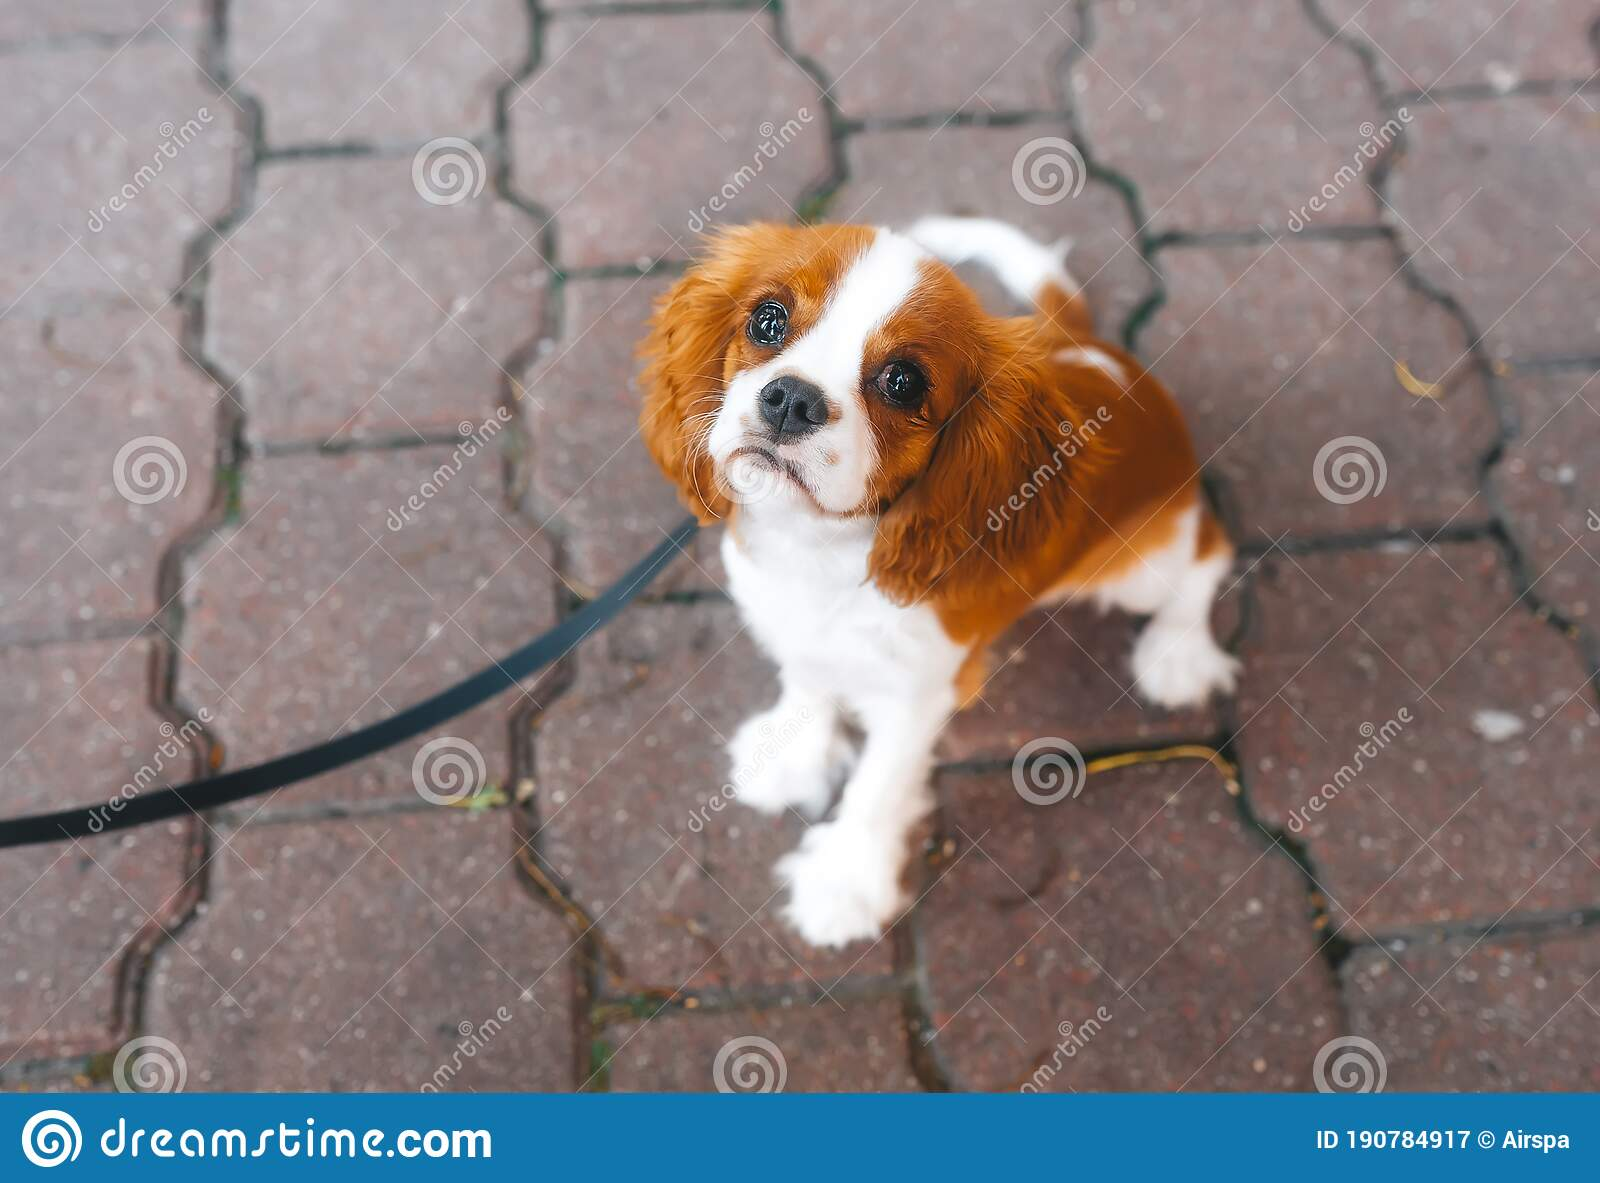 Portrait Of A Cute Cavalier King Charles Spaniel Puppy On The Leash Looking Into Camera Top View Stock Image Image Of Collar Love 190784917